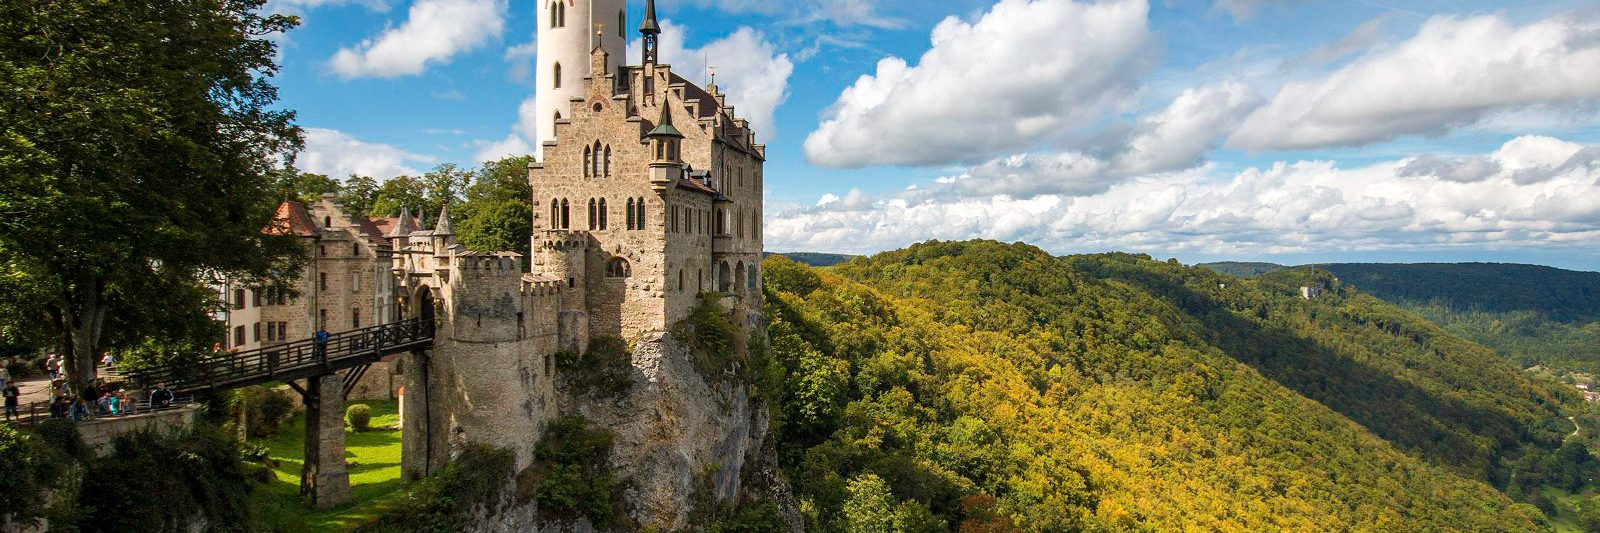 Best Europe Vacation Destinations Liechtenstein Castle